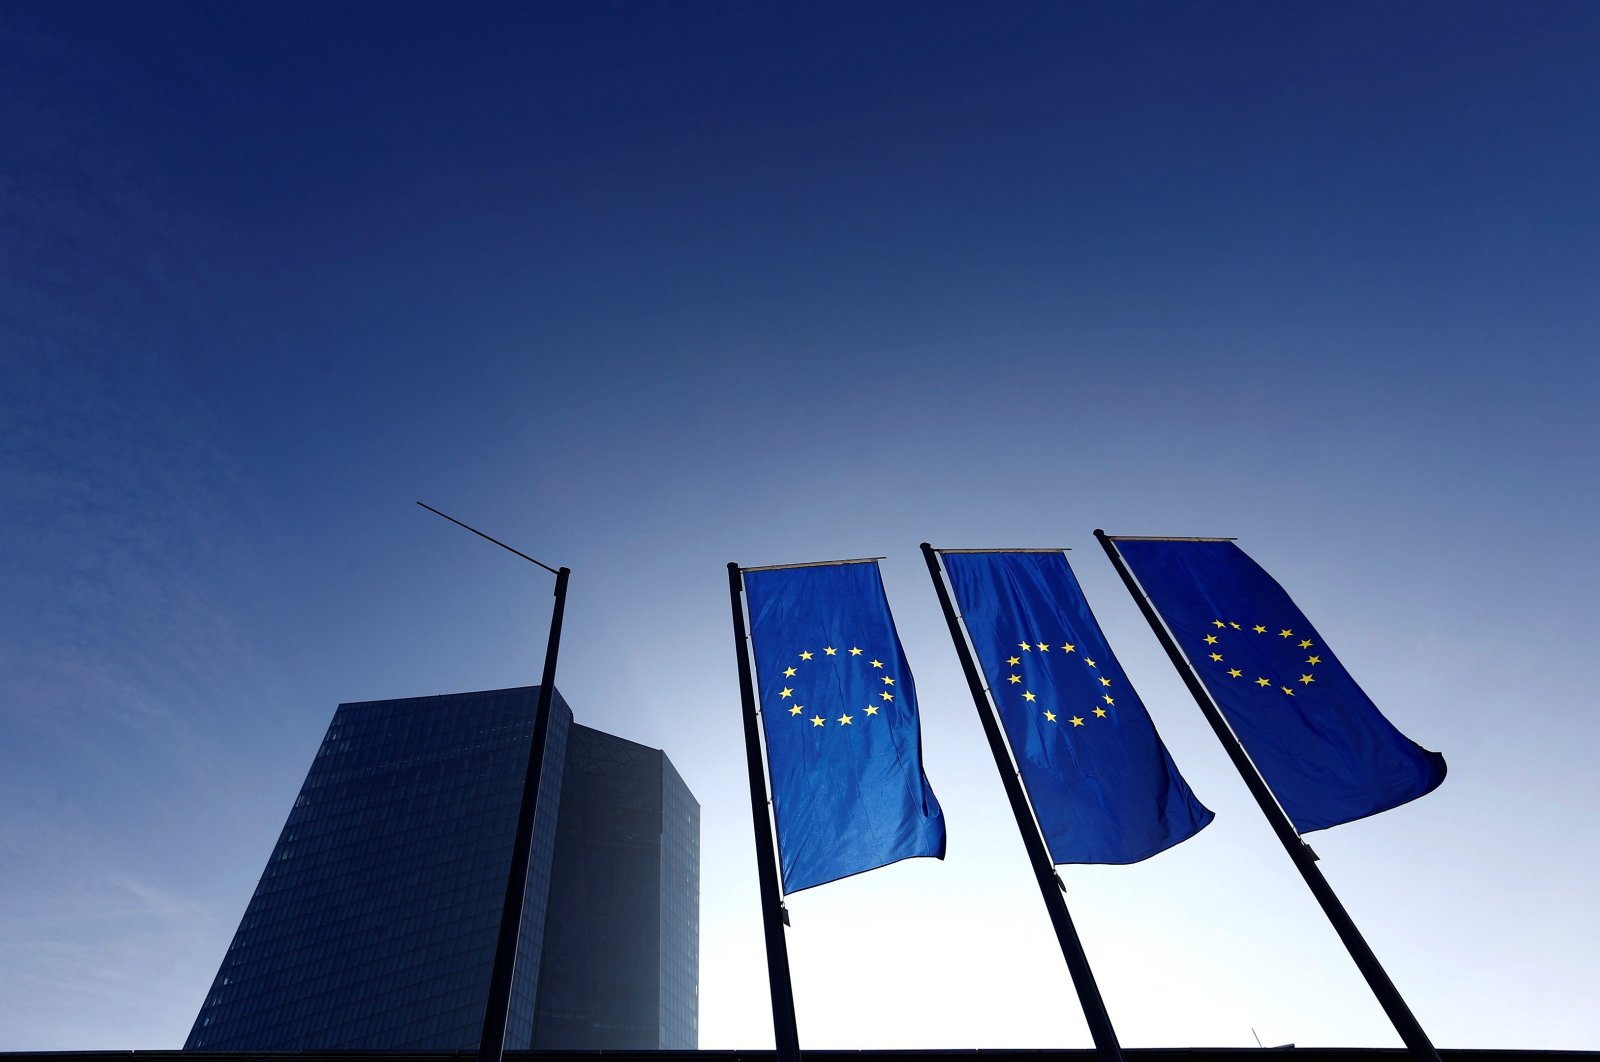 This undated photo shows EU flags outside the European Central Bank (ECB) headquarters, Frankfurt, Germany. (REUTERS Photo)